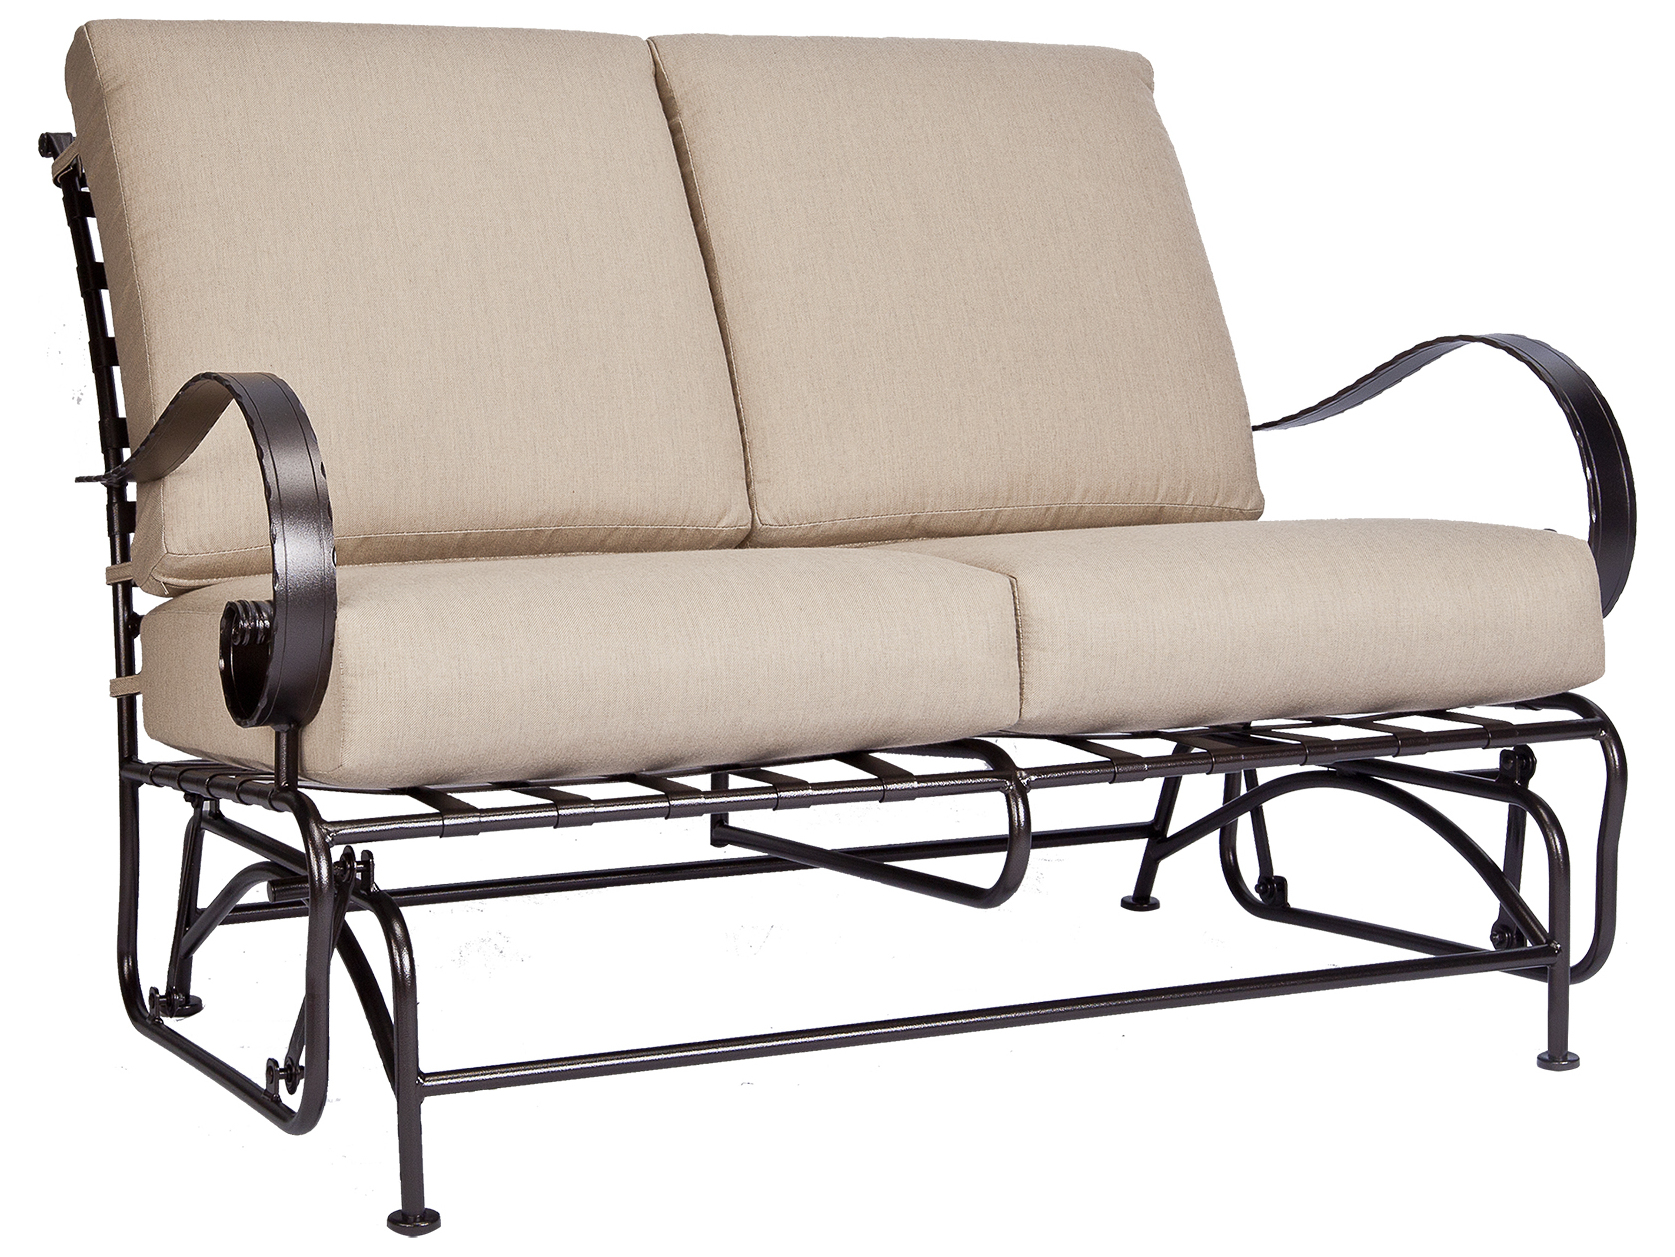 Ow Lee Classico Wide Arms Wrought Iron Loveseat Glider 956 2gw